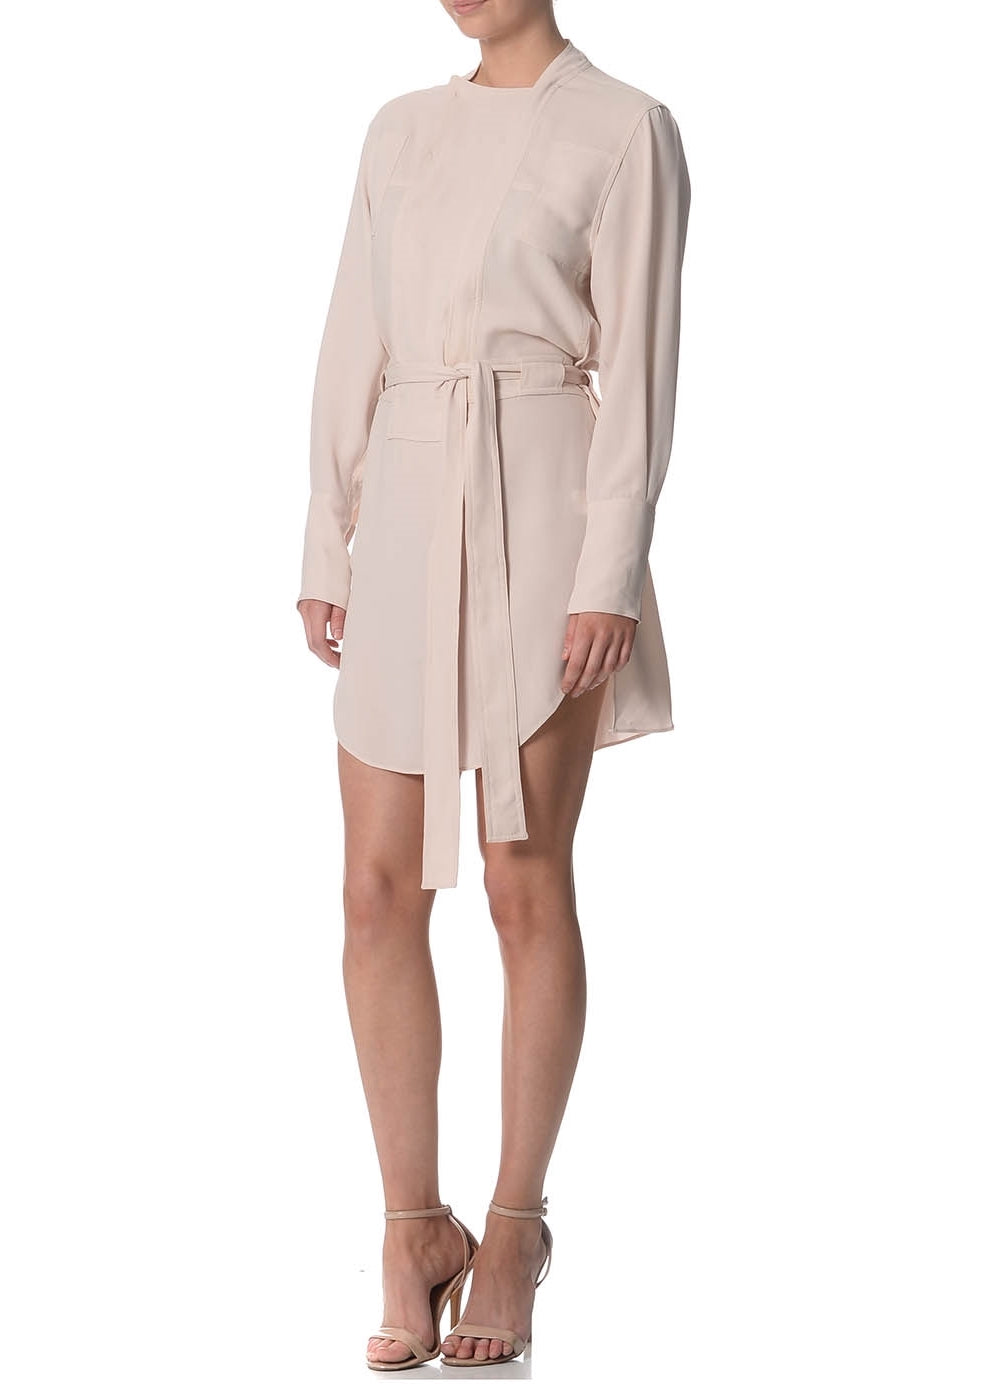 Janet Nude Pink Trench Dress